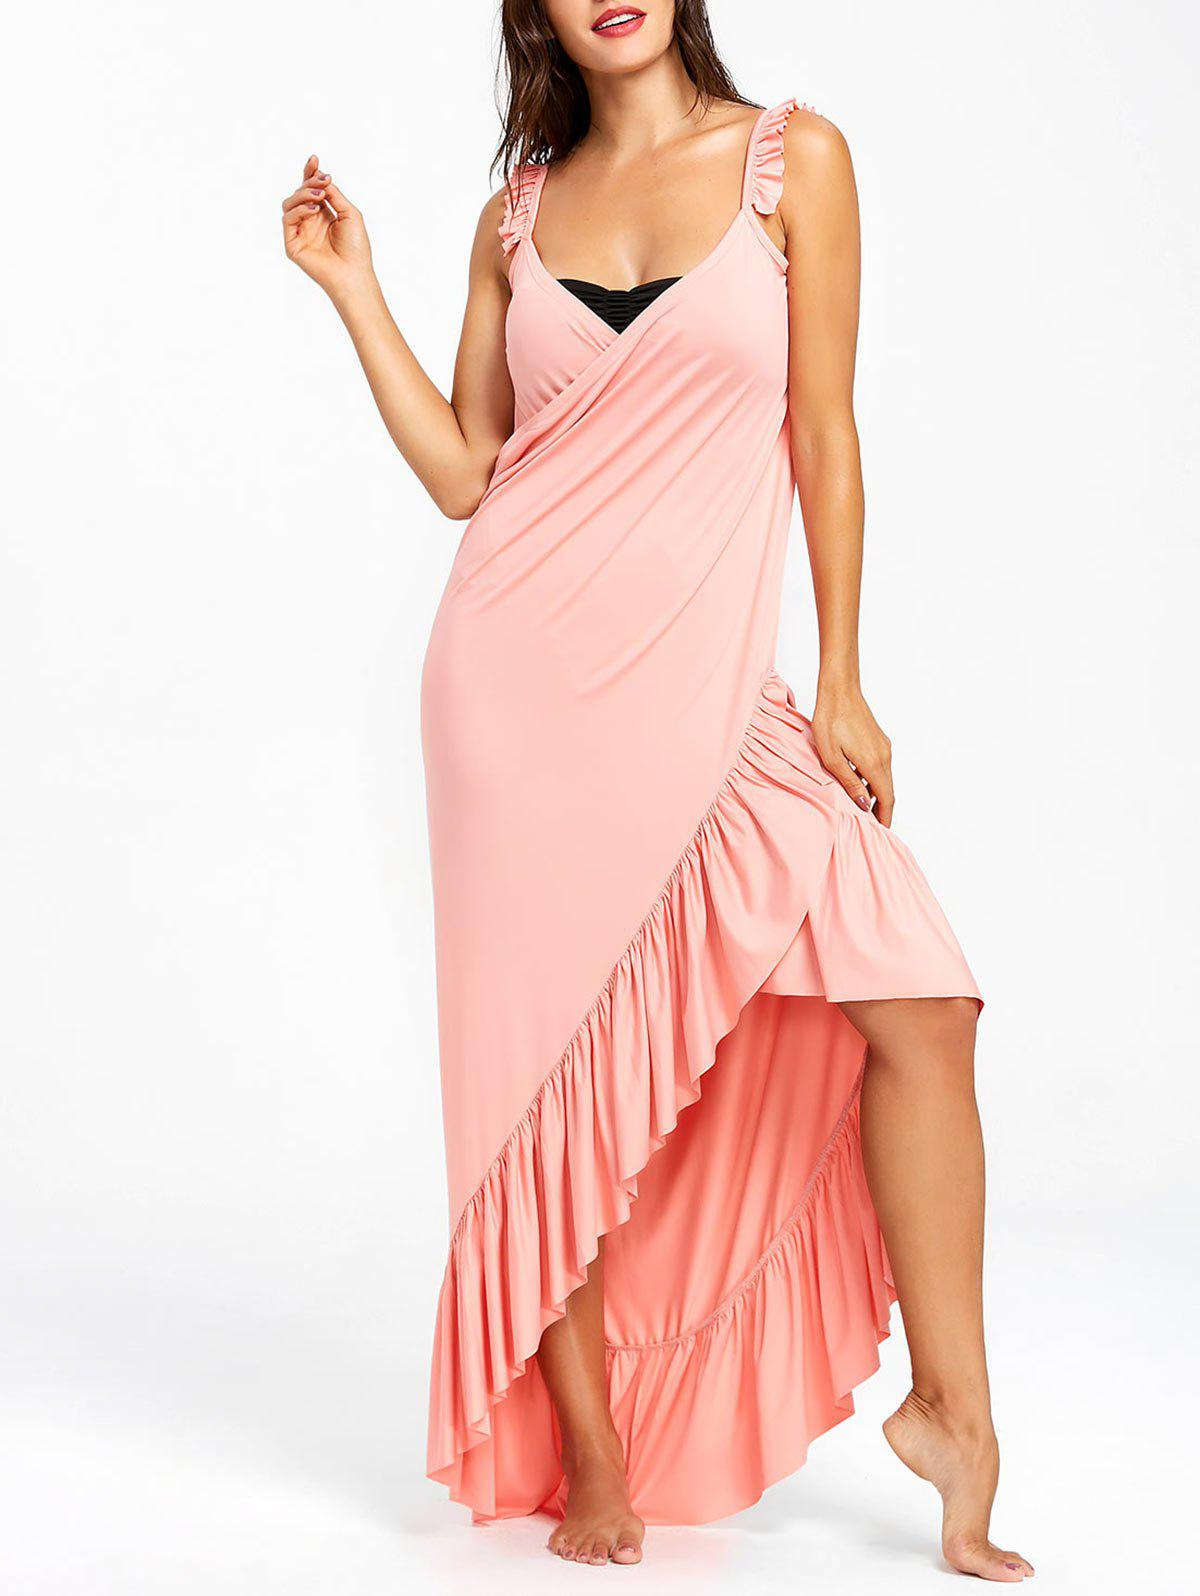 Wrap Flounce Beach Cover Up Dress - LIGHT PINK M